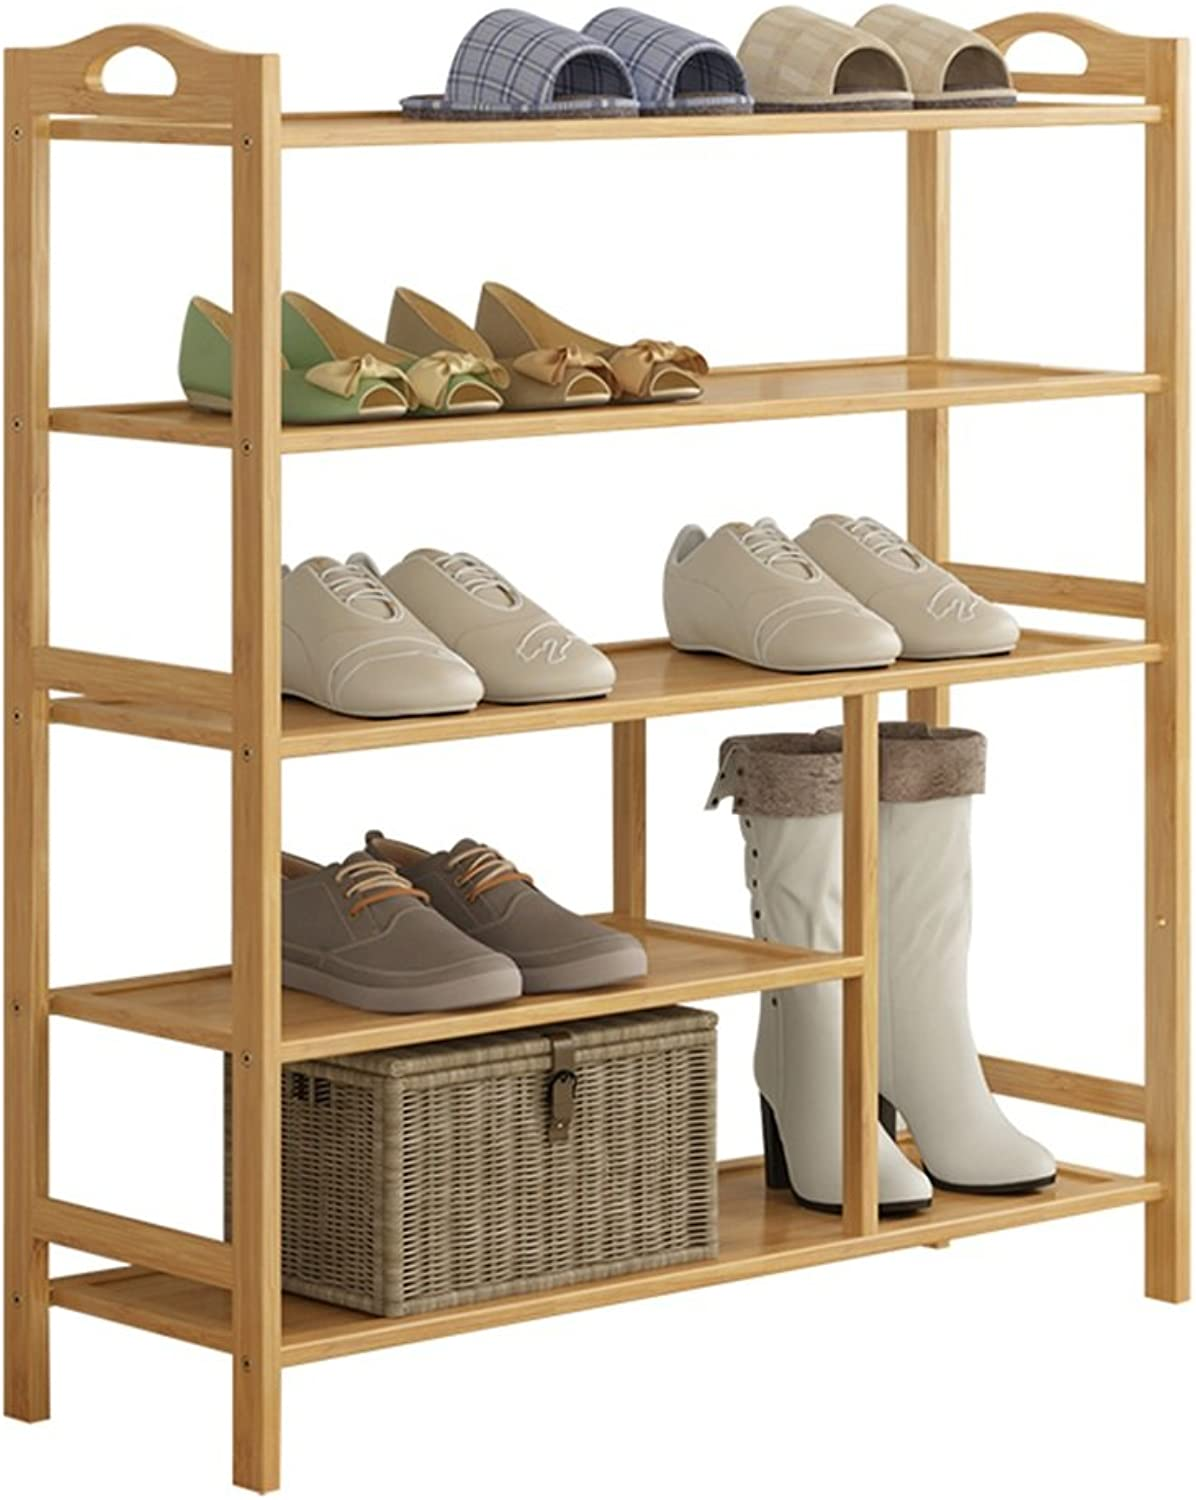 ZHIRONG Bamboo 5-Tier shoes Rack 12-16 Pairs Entryway shoes Shelf Storage Organizer 70  26  93CM   80  26  93CM   90  26  93CM